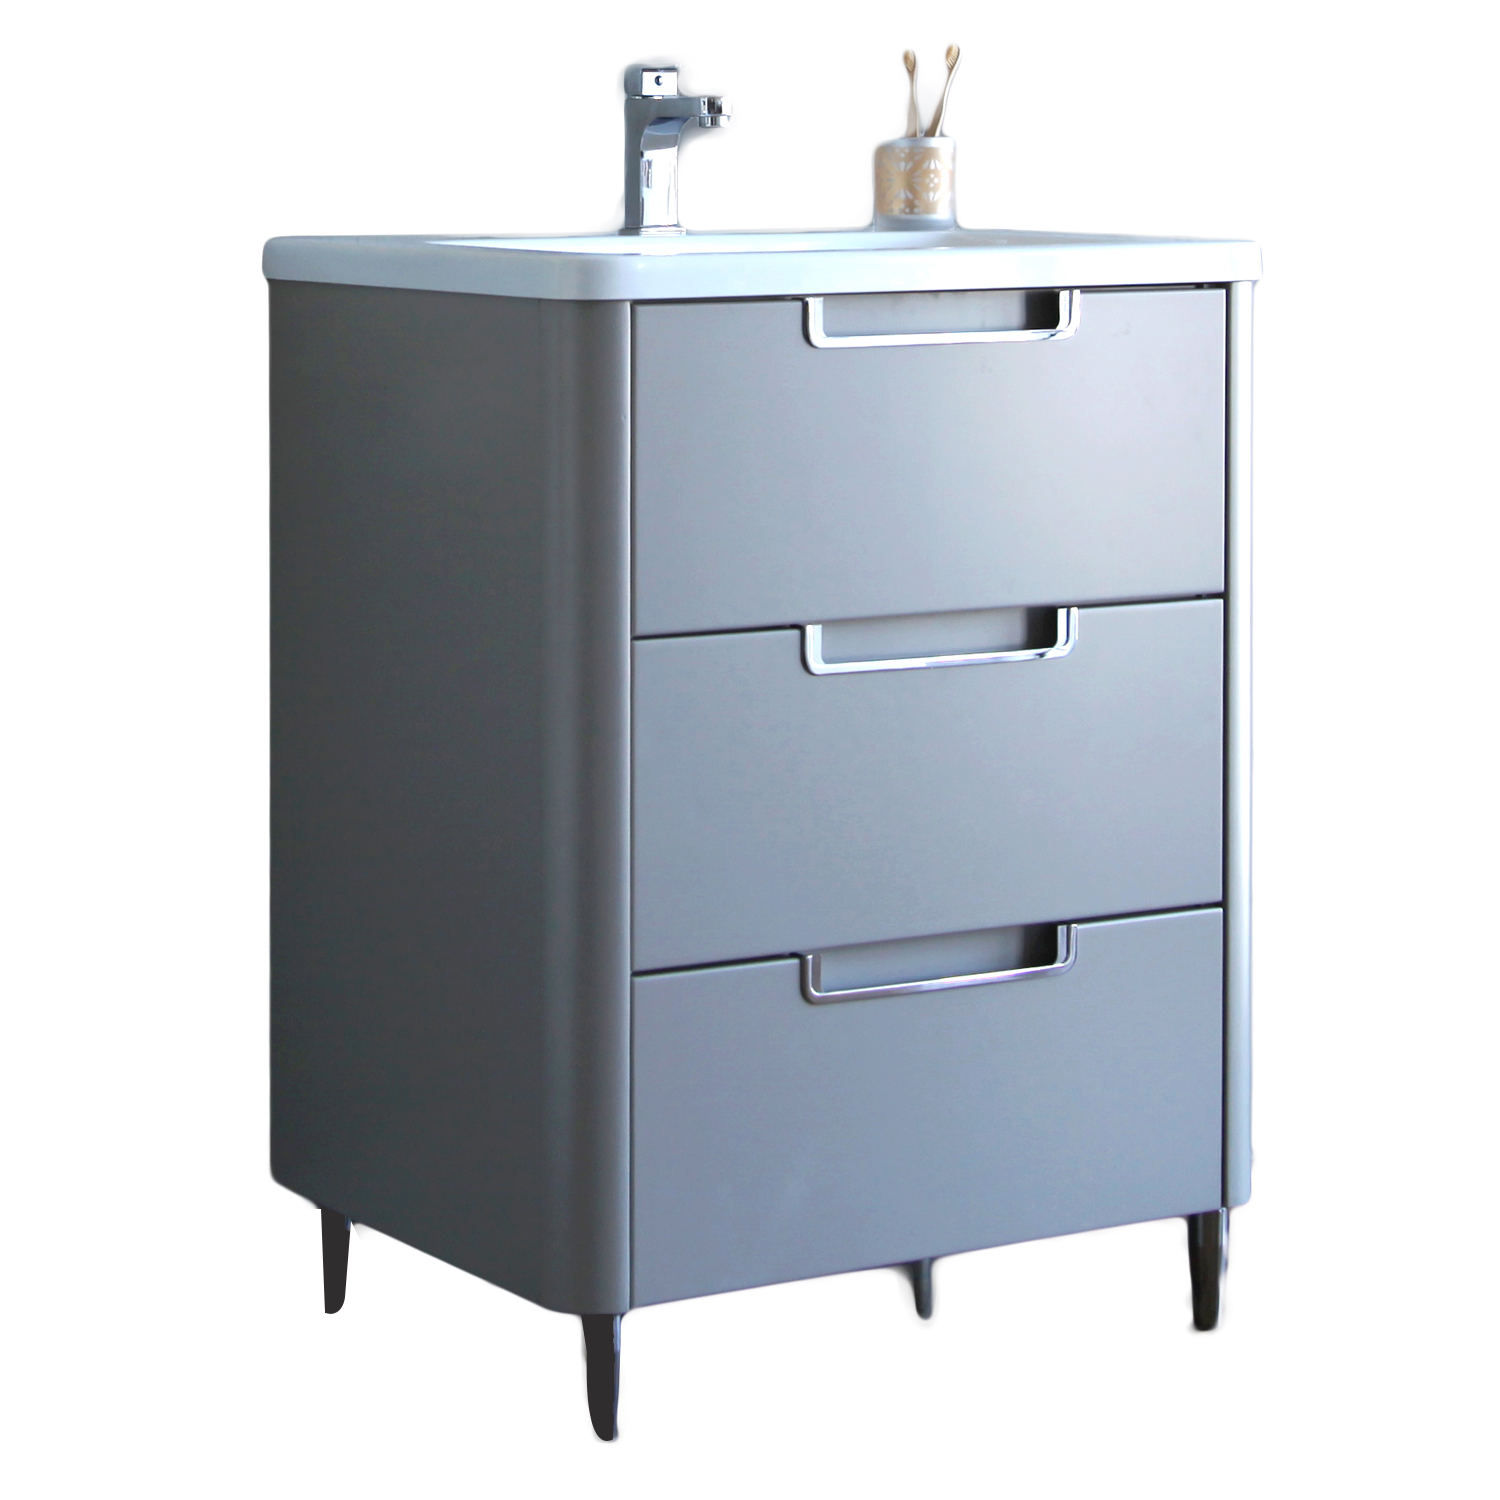 EVVN74 32GR A Main - Eviva Marbella 32 in. Bathroom Vanity in Fossil Gray and White Integrated Acrylic Countertop